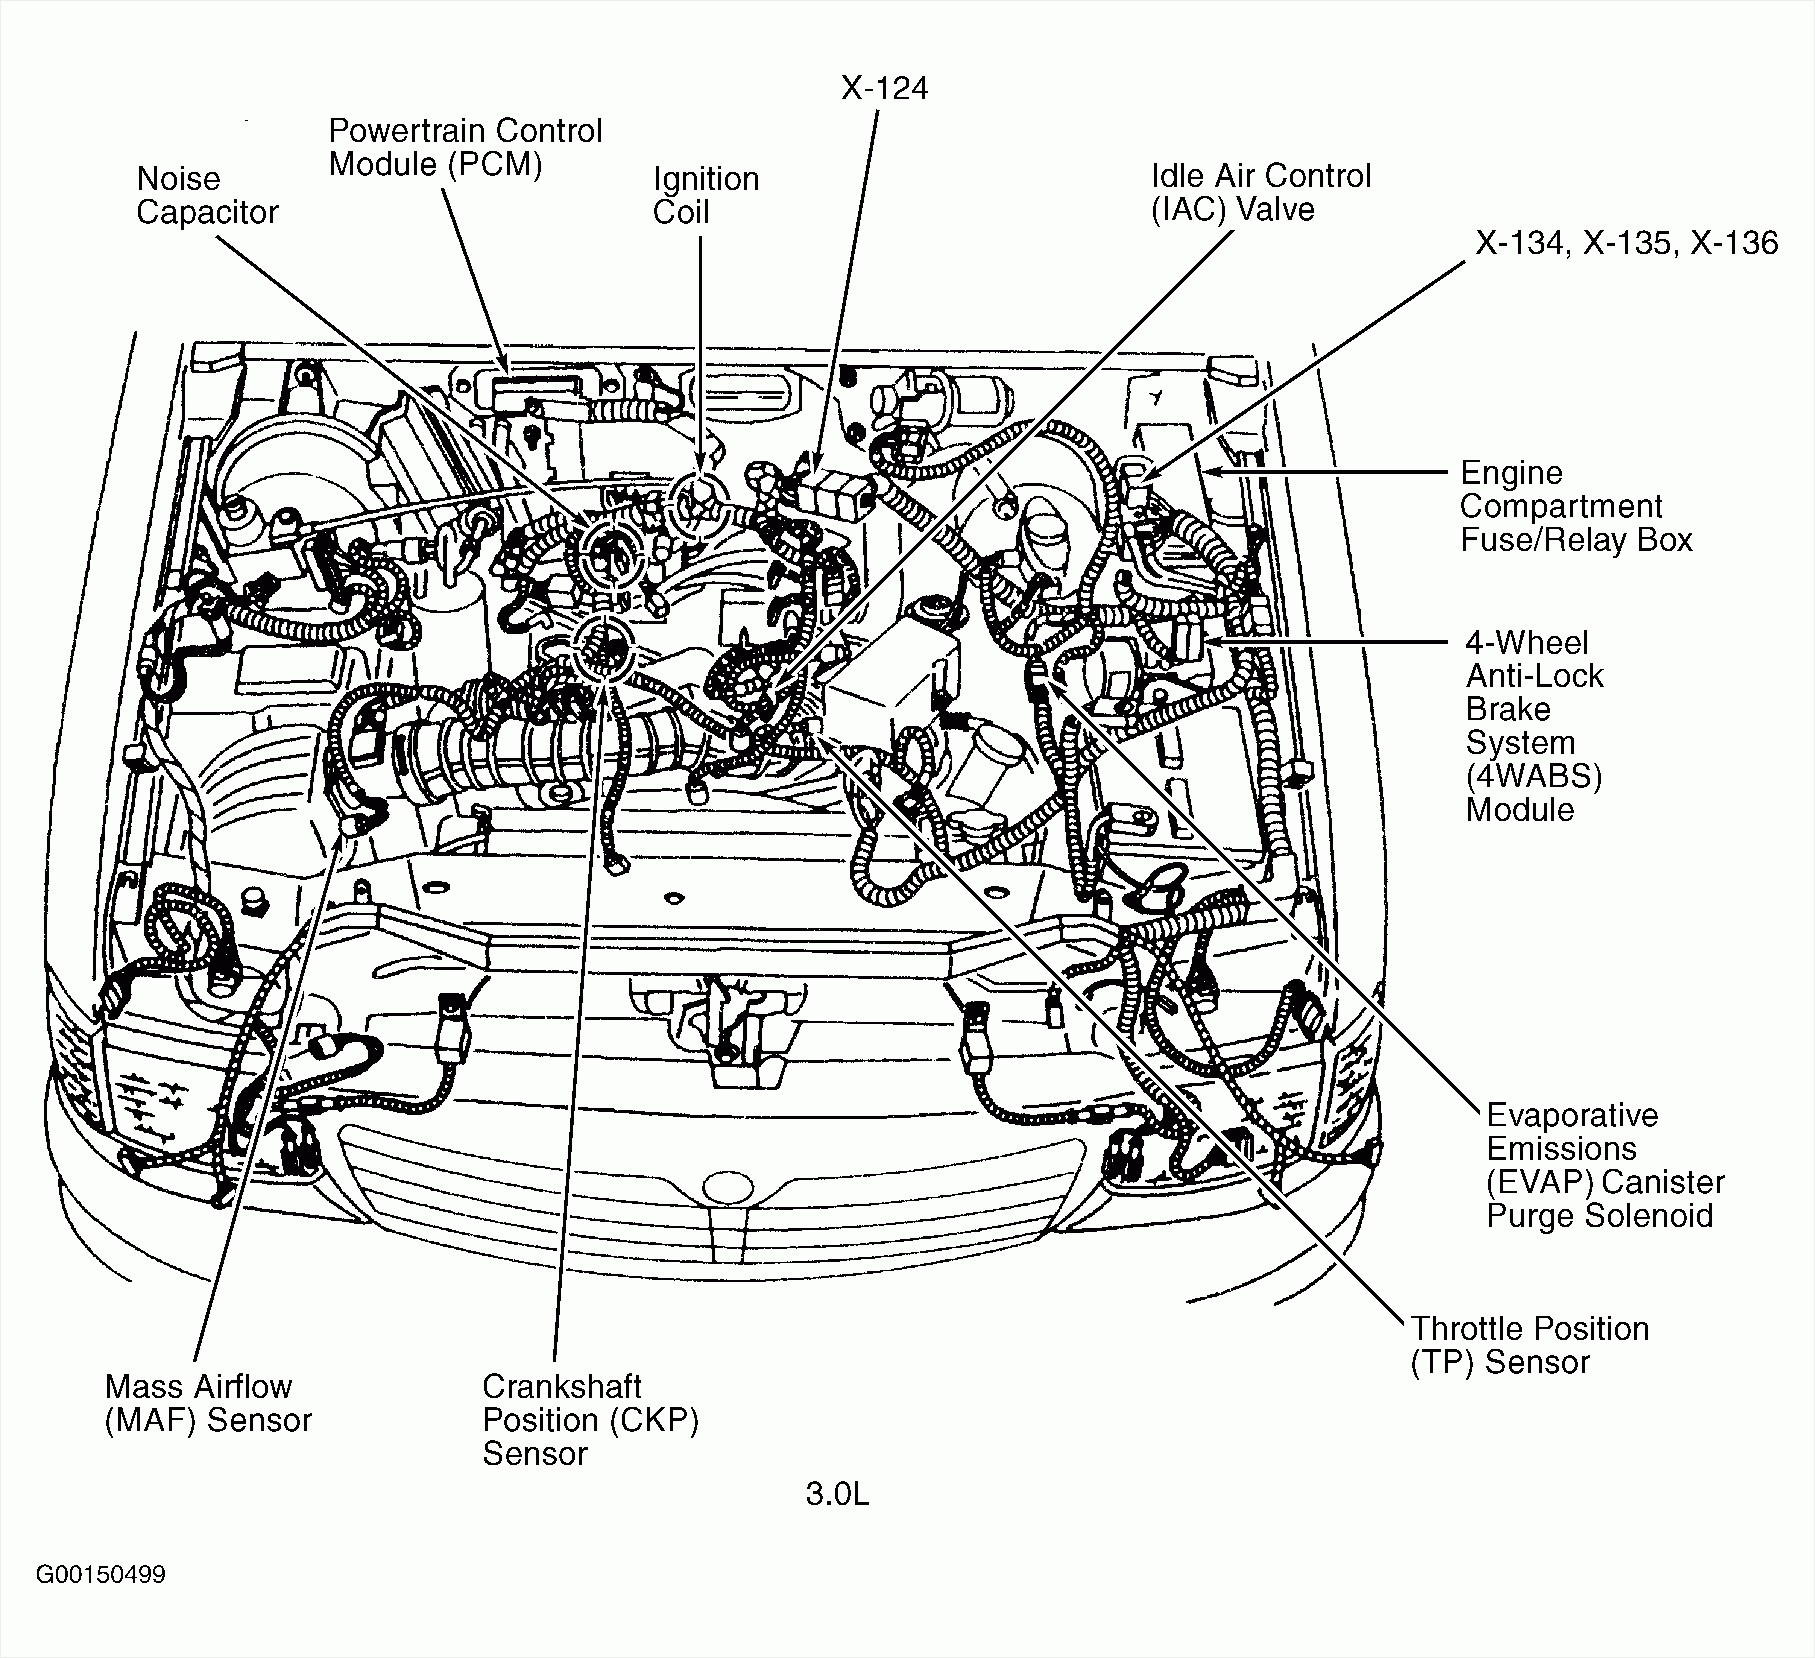 hight resolution of 2007 ford mustang v6 engine diagram wiring diagram toolbox 2008 ford mustang 4 0 v6 engine diagram